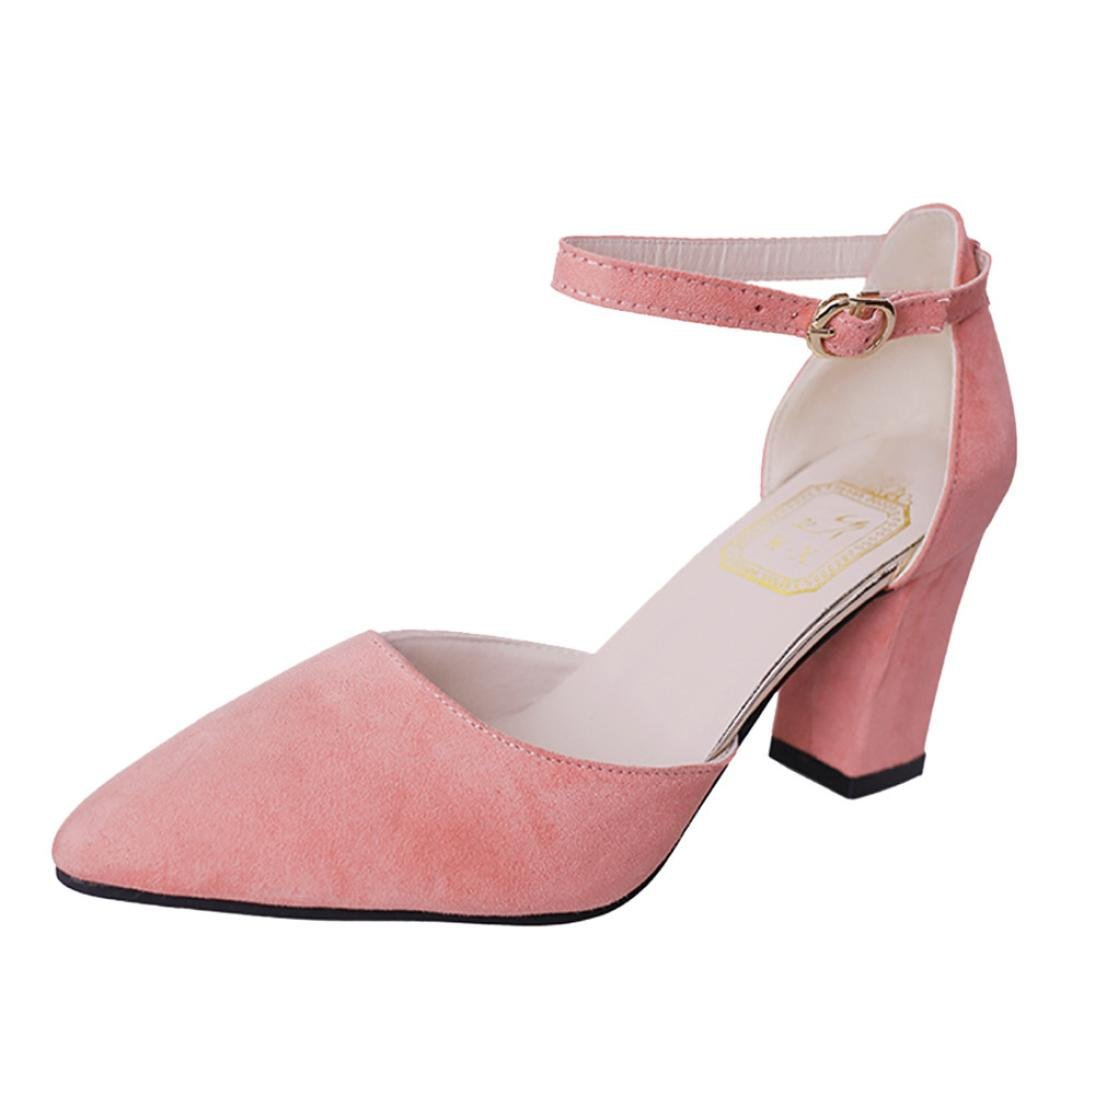 Fiaya Women s Flock Pointed Toe High Heels Suede Ankle Strap Pumps (Pink